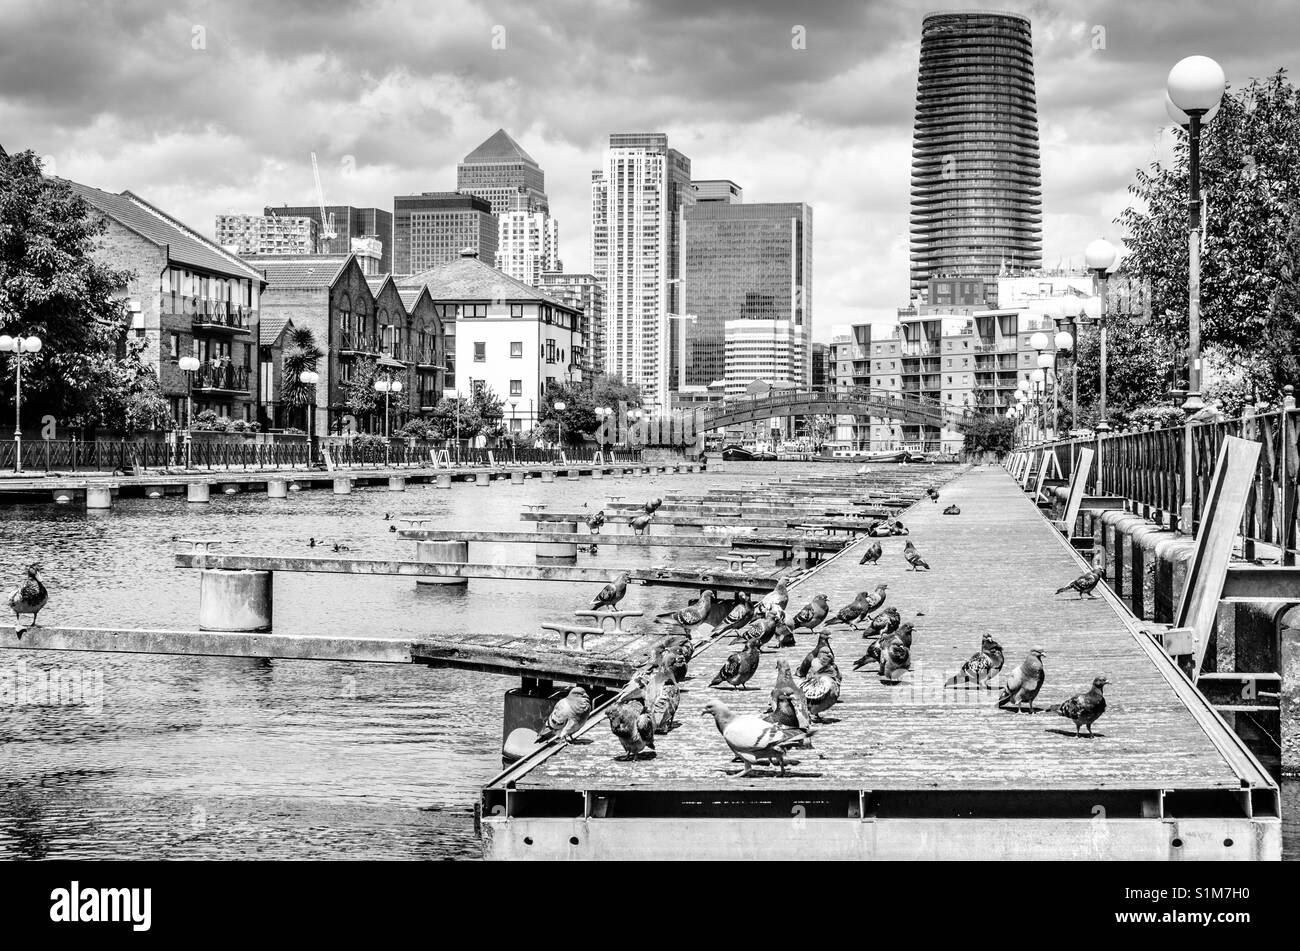 Pigeons on a jetty at the Docklands with the skyscrapers of Canary Wharf in the background, London - Stock Image